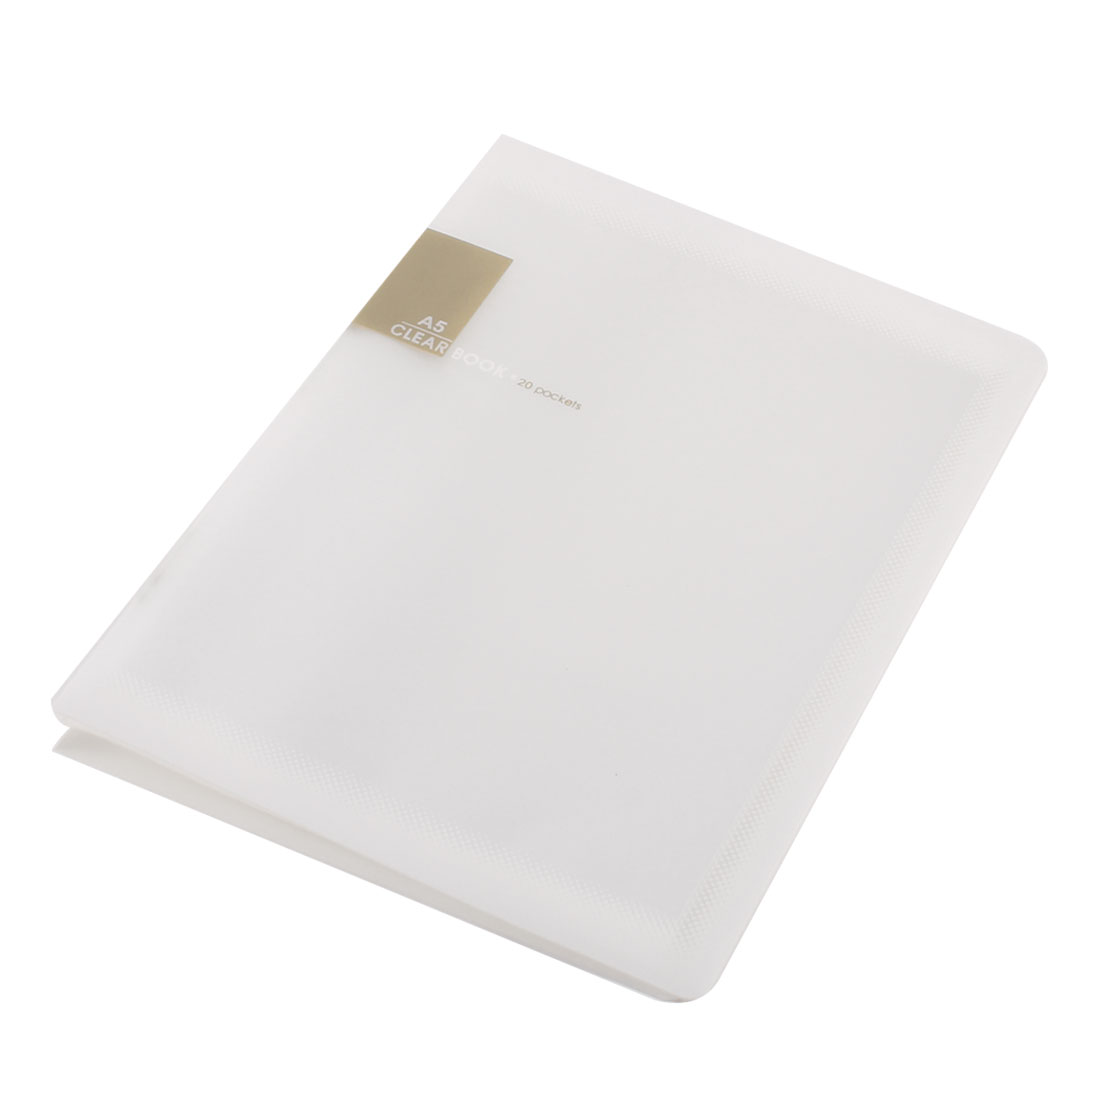 White Plastic 20 Pockets File Book Document Folder Holder for A5 Papers